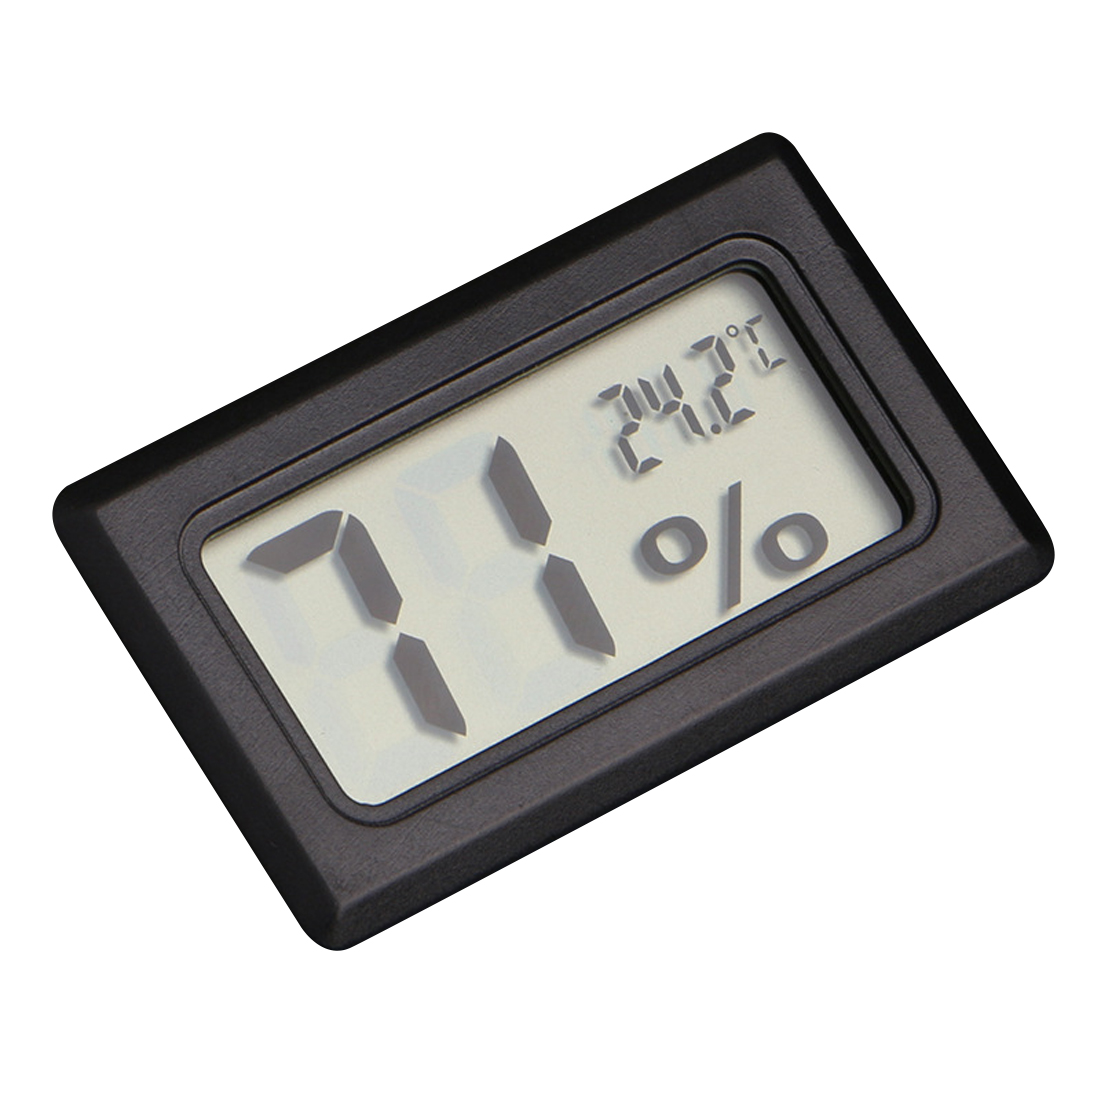 Mini Black Digital LCD Temperature Humidity Indoor Room Humidity Meter Thermometer Hygrometer Temperature Sensor Humidity 1pcs ph75s280 24 module simple function 50 to 600w dc dc converters in stock 100%new and original